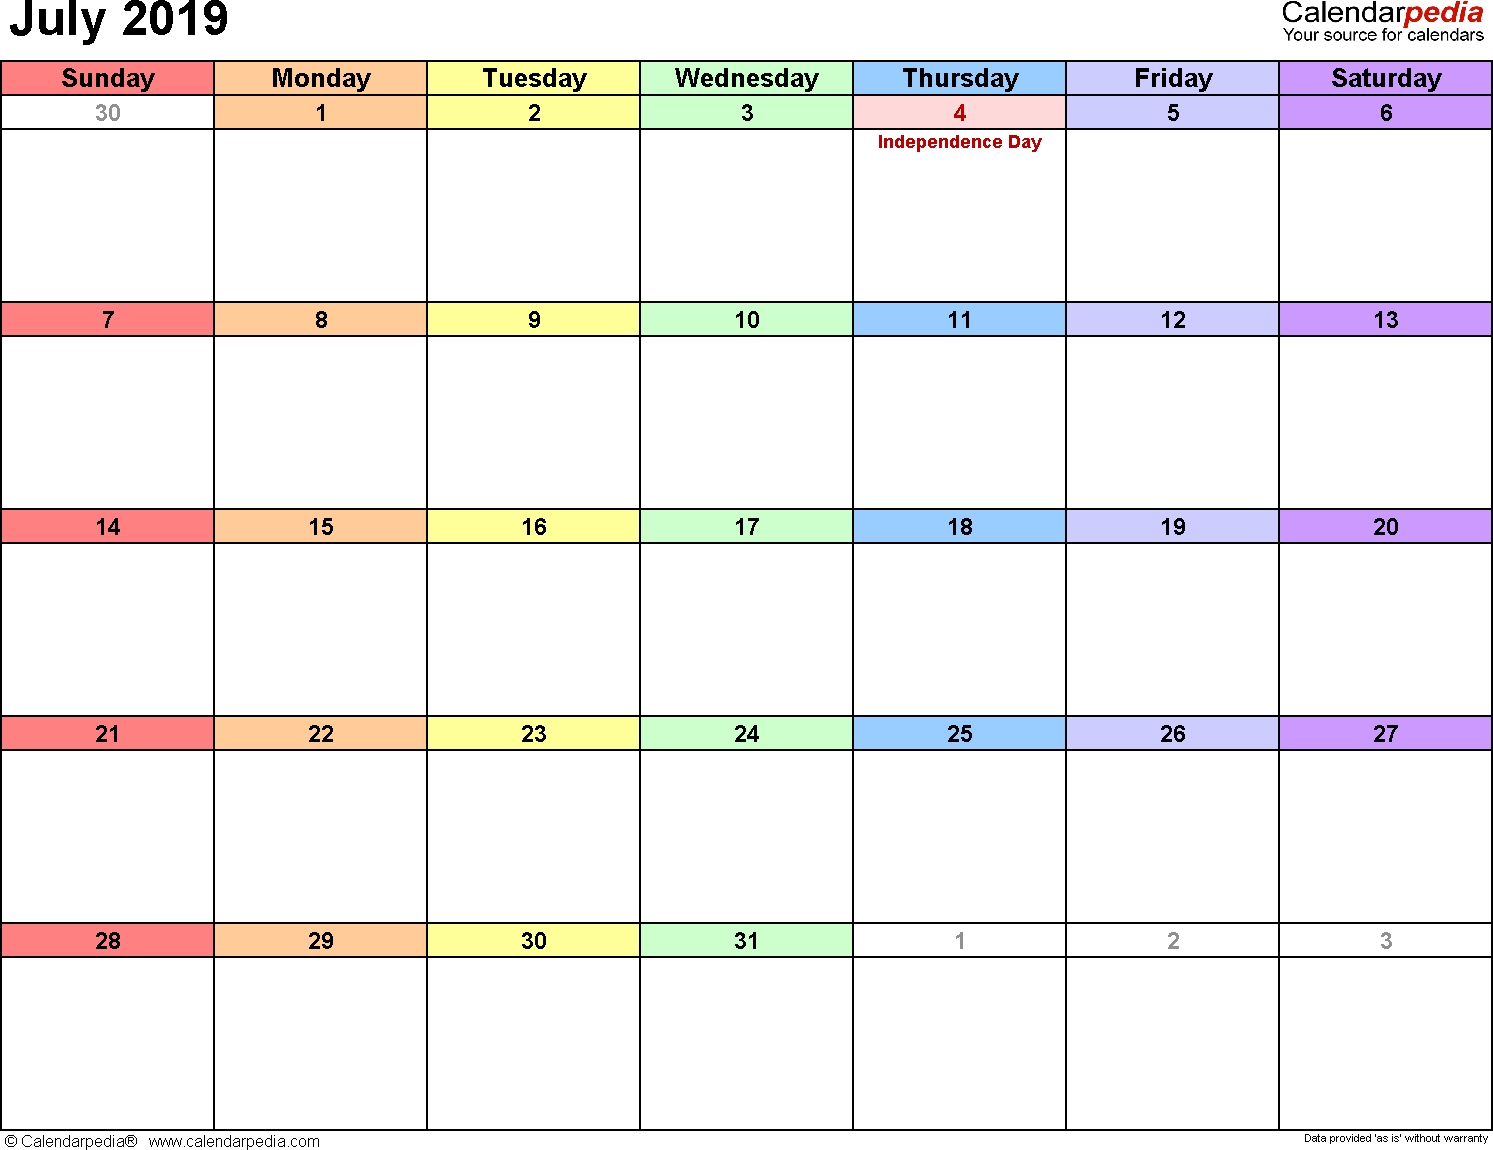 Calendarpedia - Your Source For Calendars with regard to Calendar Maker July 2019-June 2020